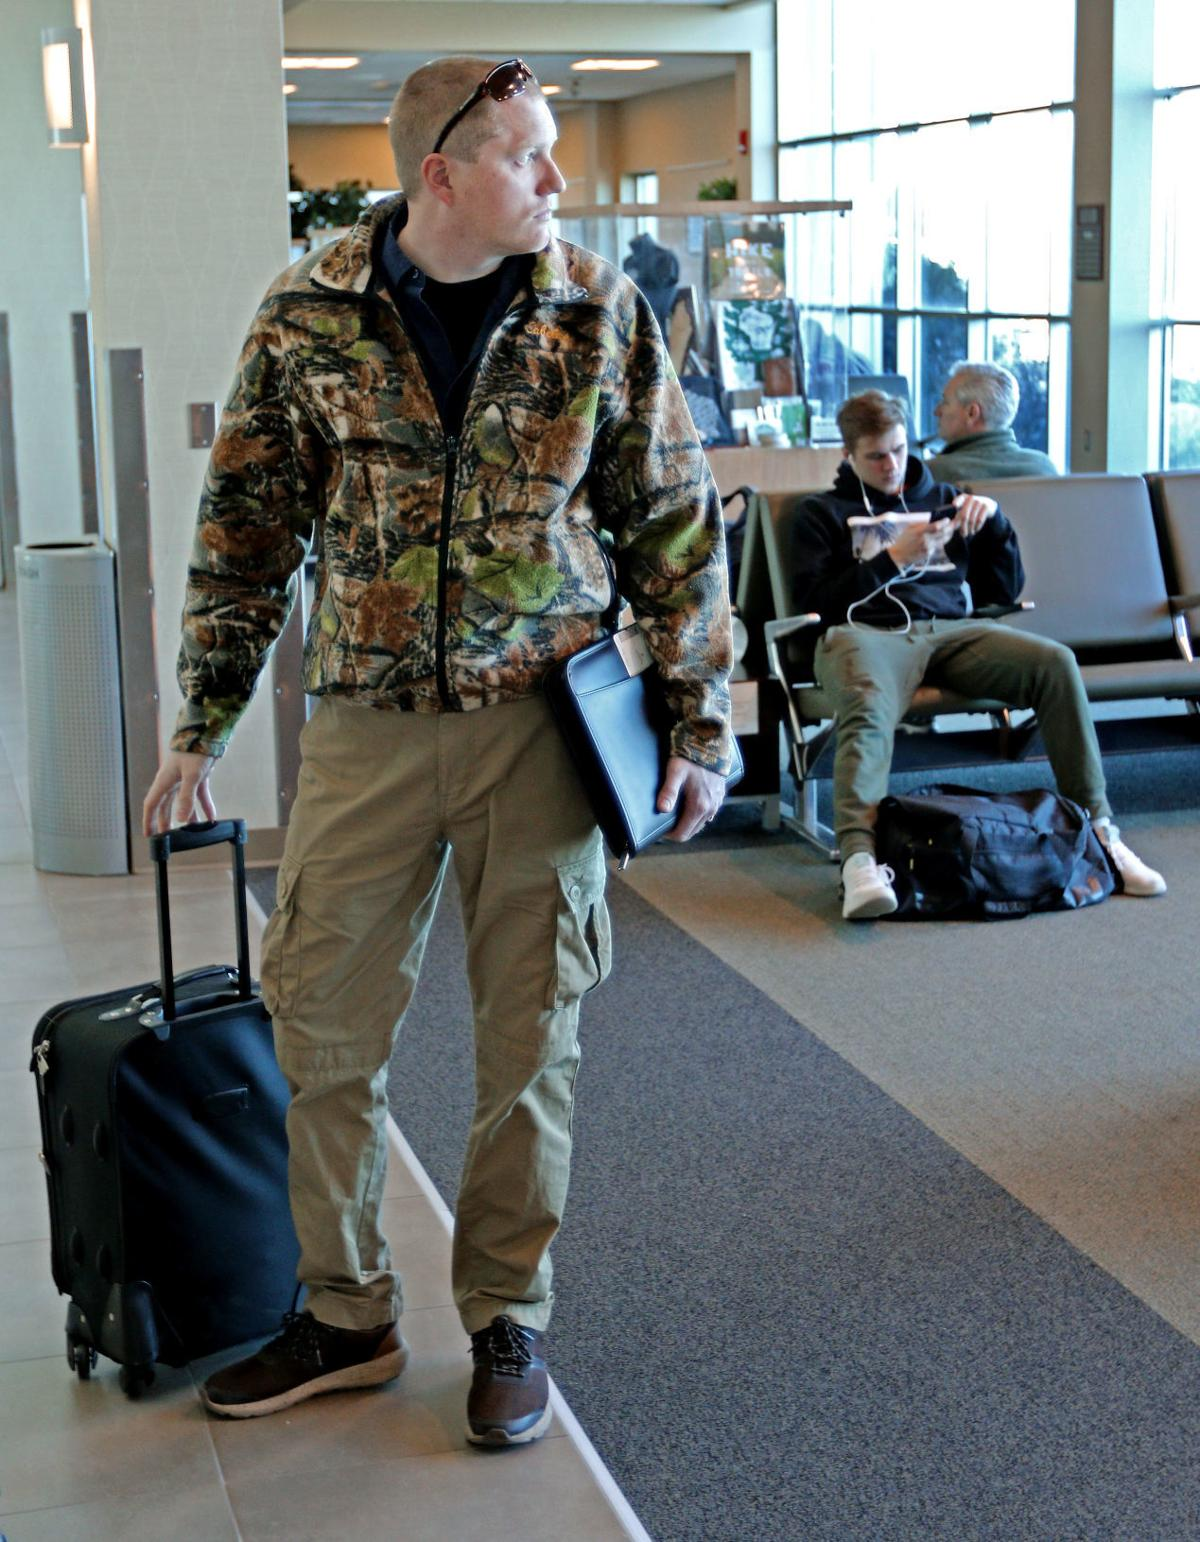 011019_dr_airport_8a